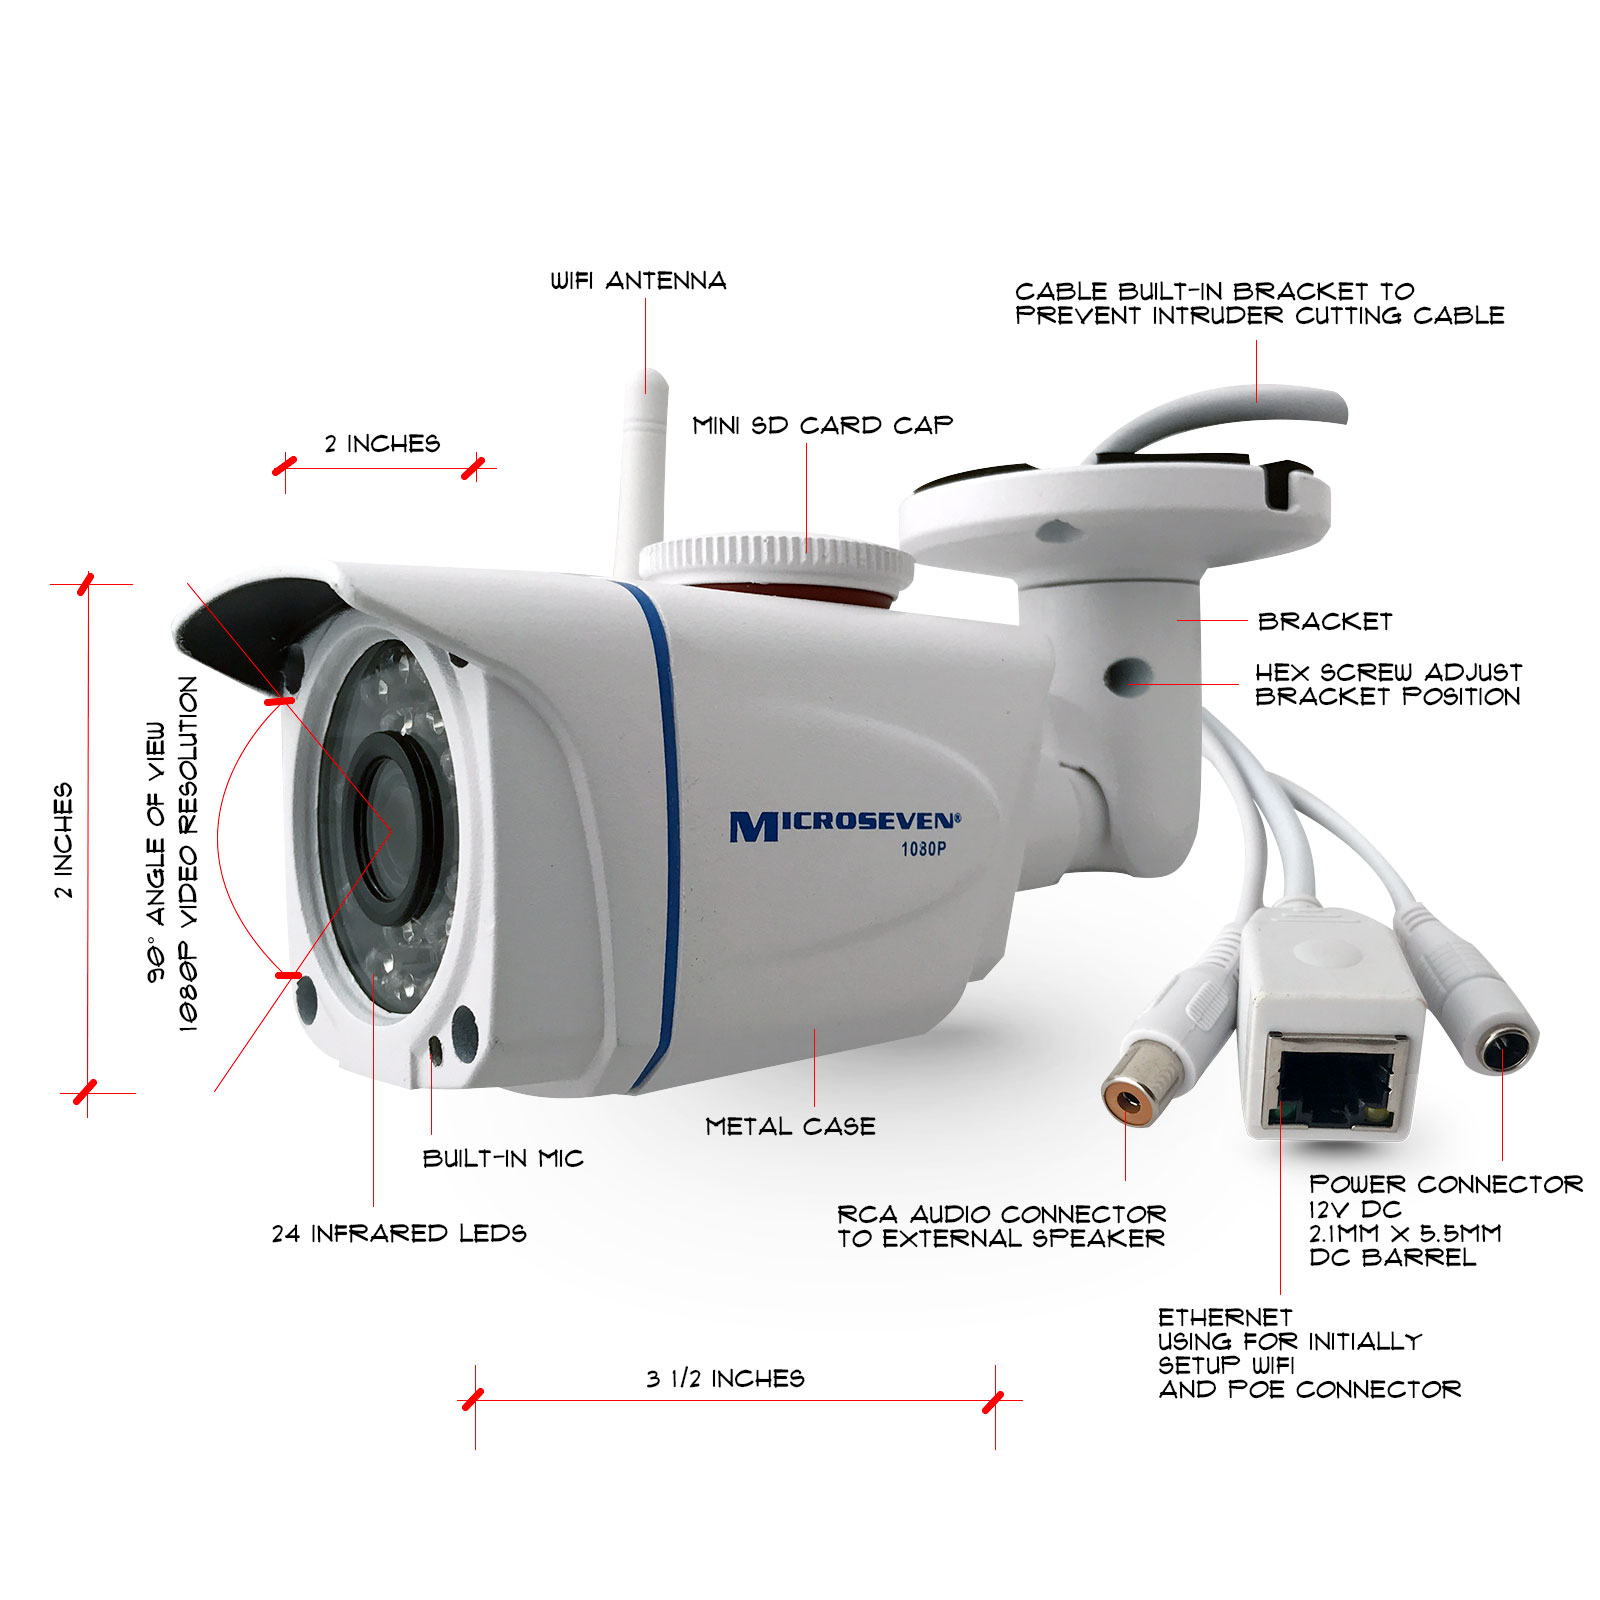 IP Cameras - Network Cameras, IP Camera, Security Camera microseven ...